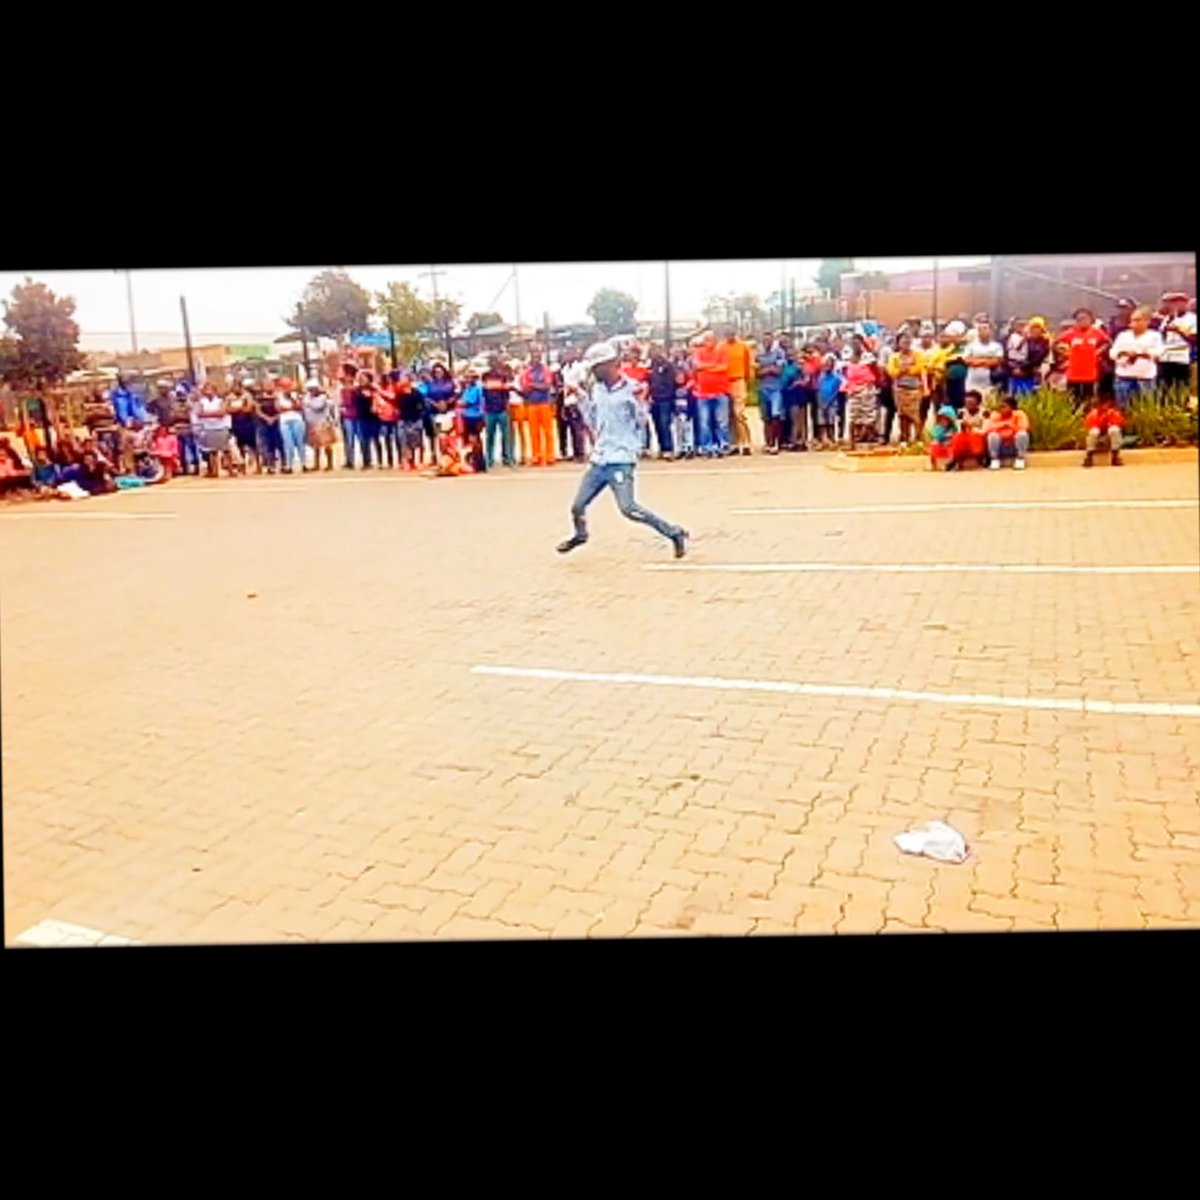 My First Live Performance yesterday in front of more than 500 people at Midrand, Kaalfortein Corner was lit and Memorable #fmpstudio #theyanos #amapiano2019 #amapianomovement #amapiano #amapianoisalifestyle #dancevideos  #amapianodance #housedancepic.twitter.com/ytkQ92YkwP